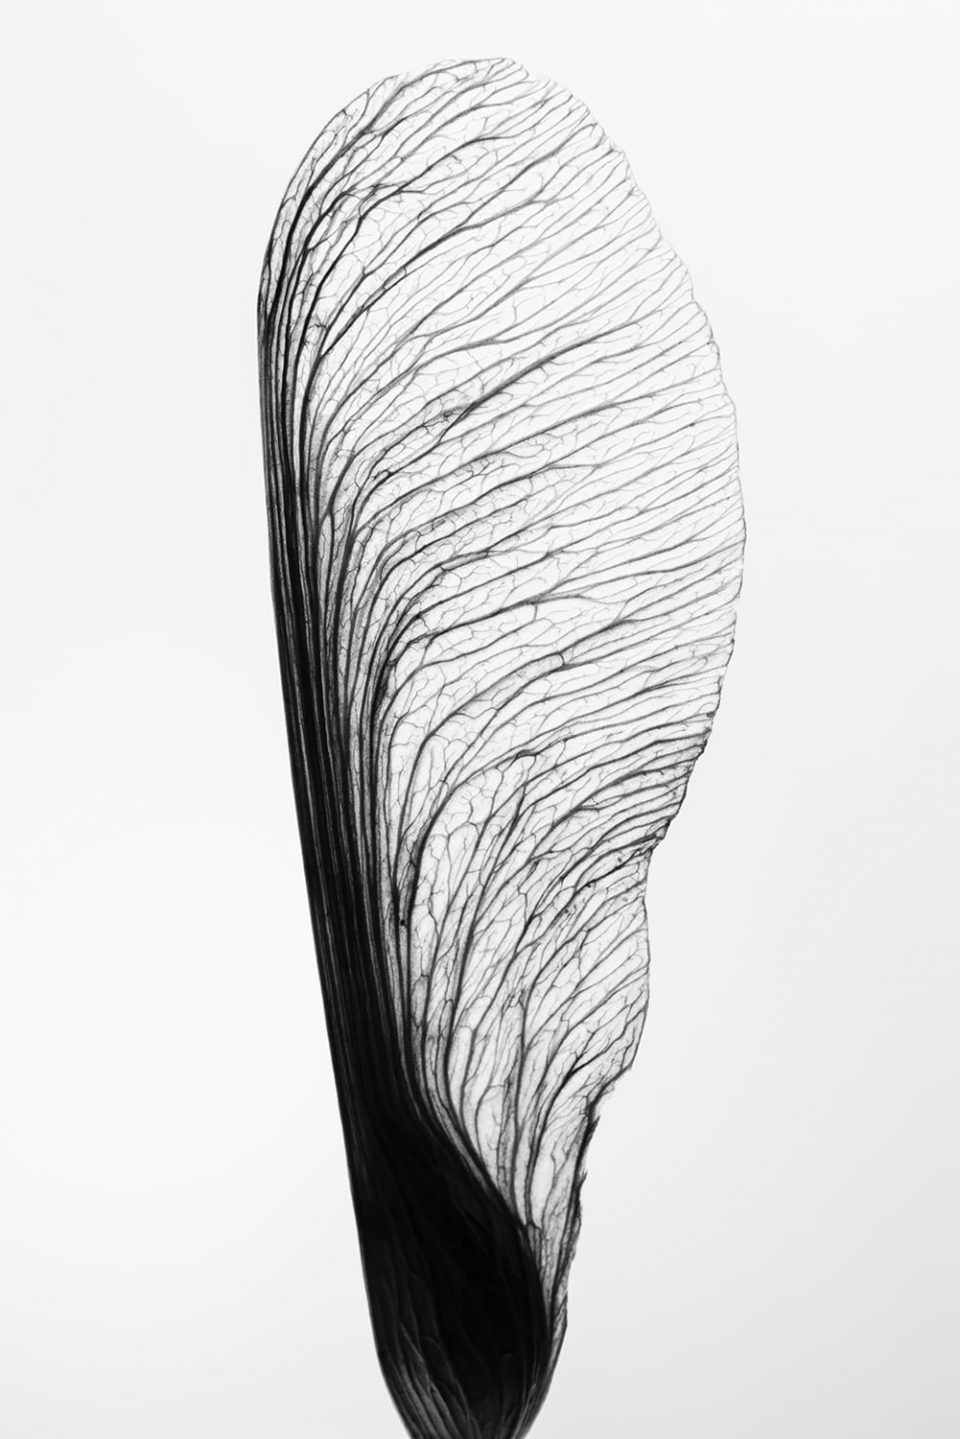 Black and white detail photograph of a seed wing by fine art photographer Keith Dotson. Click to buy a print.